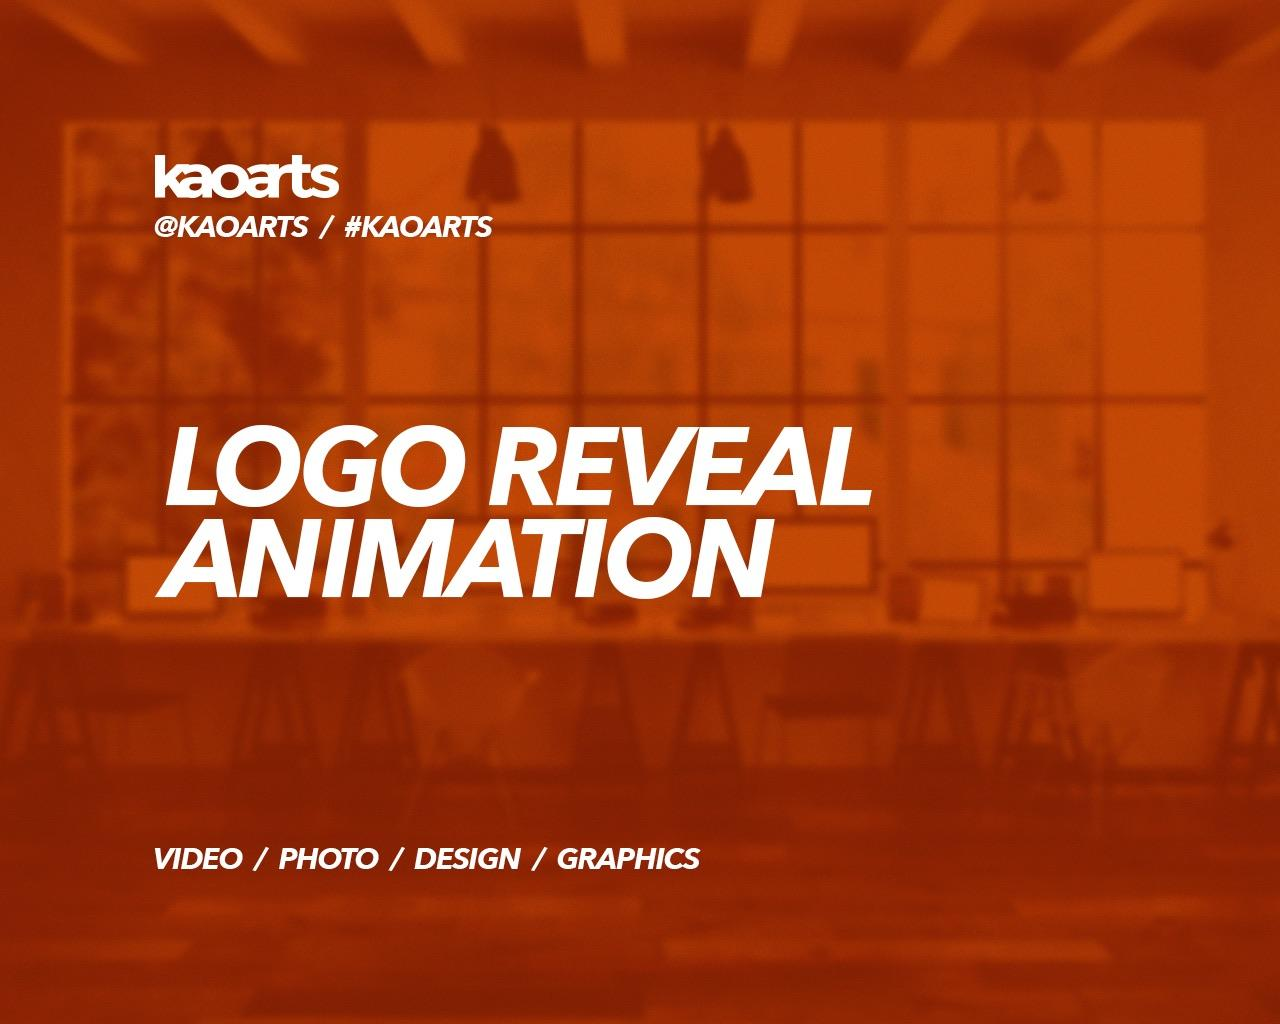 Professional Logo Animation : Intro Opener Reveal - For Website or YouTube by Kaoarts - 95846